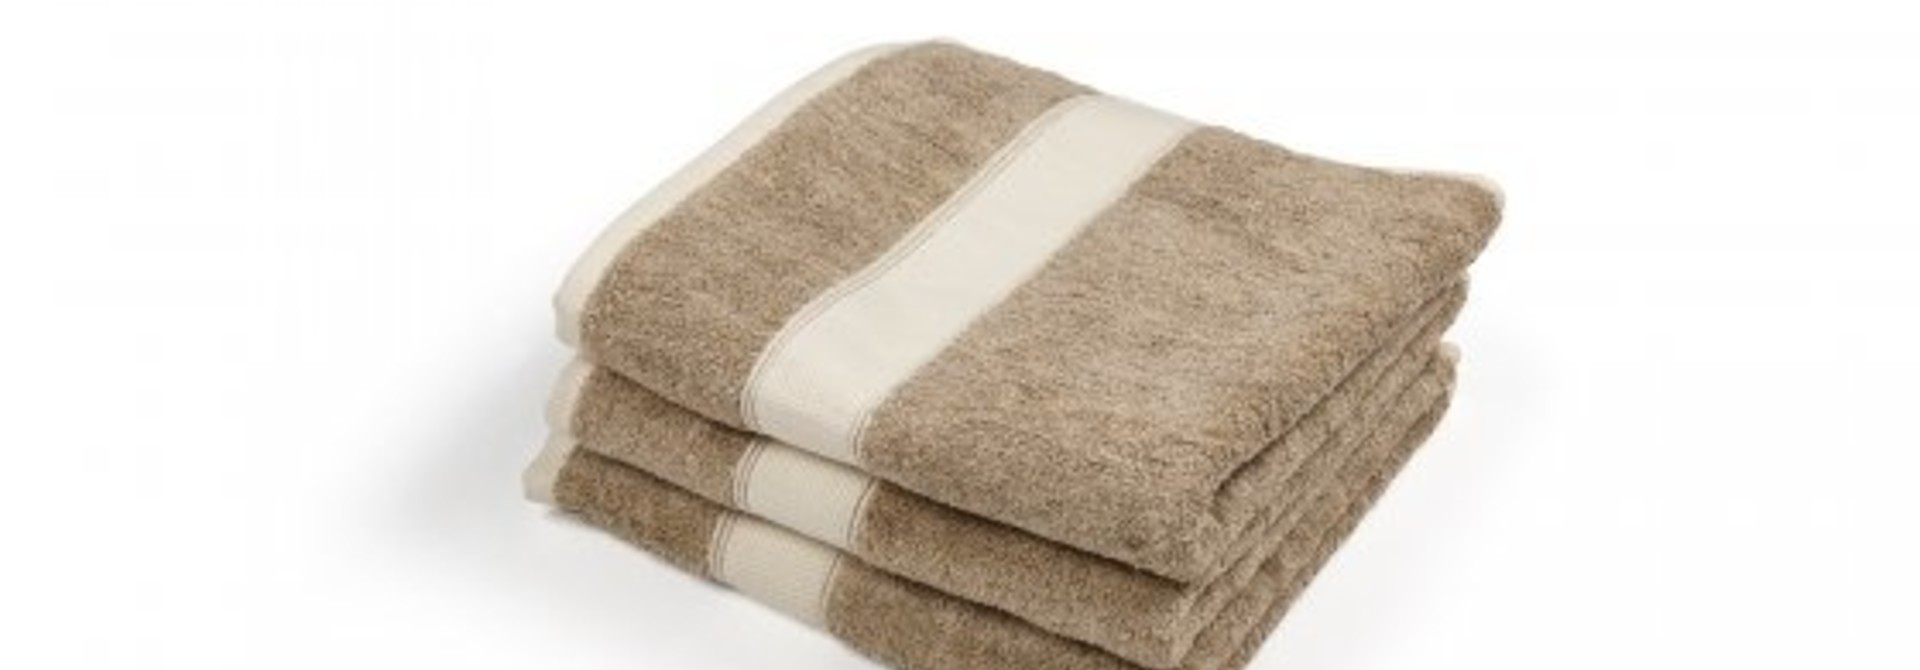 Spa Guest Towel - Simi  - Beige/Cream